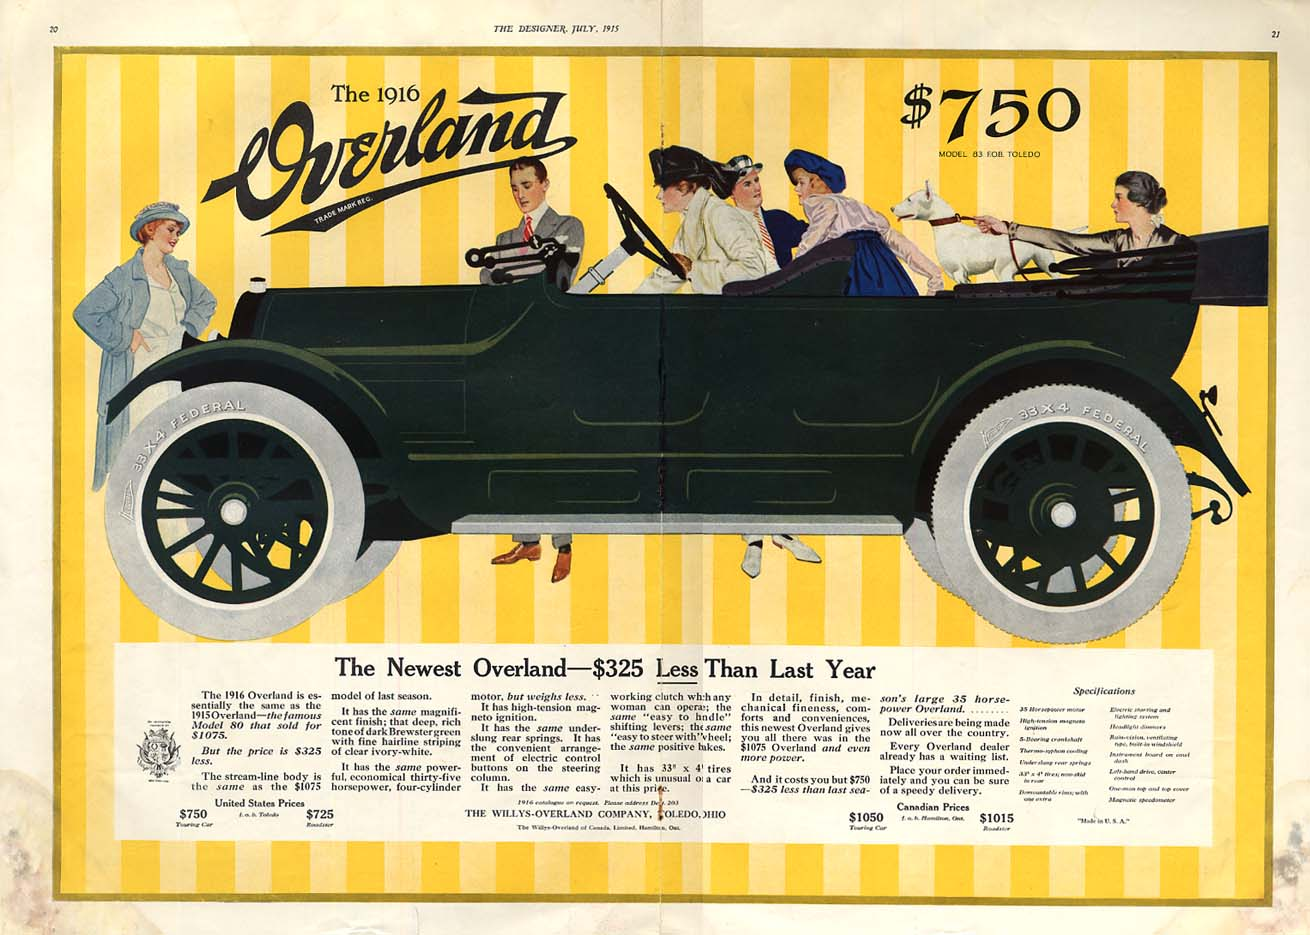 Image for The Newest Overland Youring Car $325 Lesss Than Last Year ad 1916